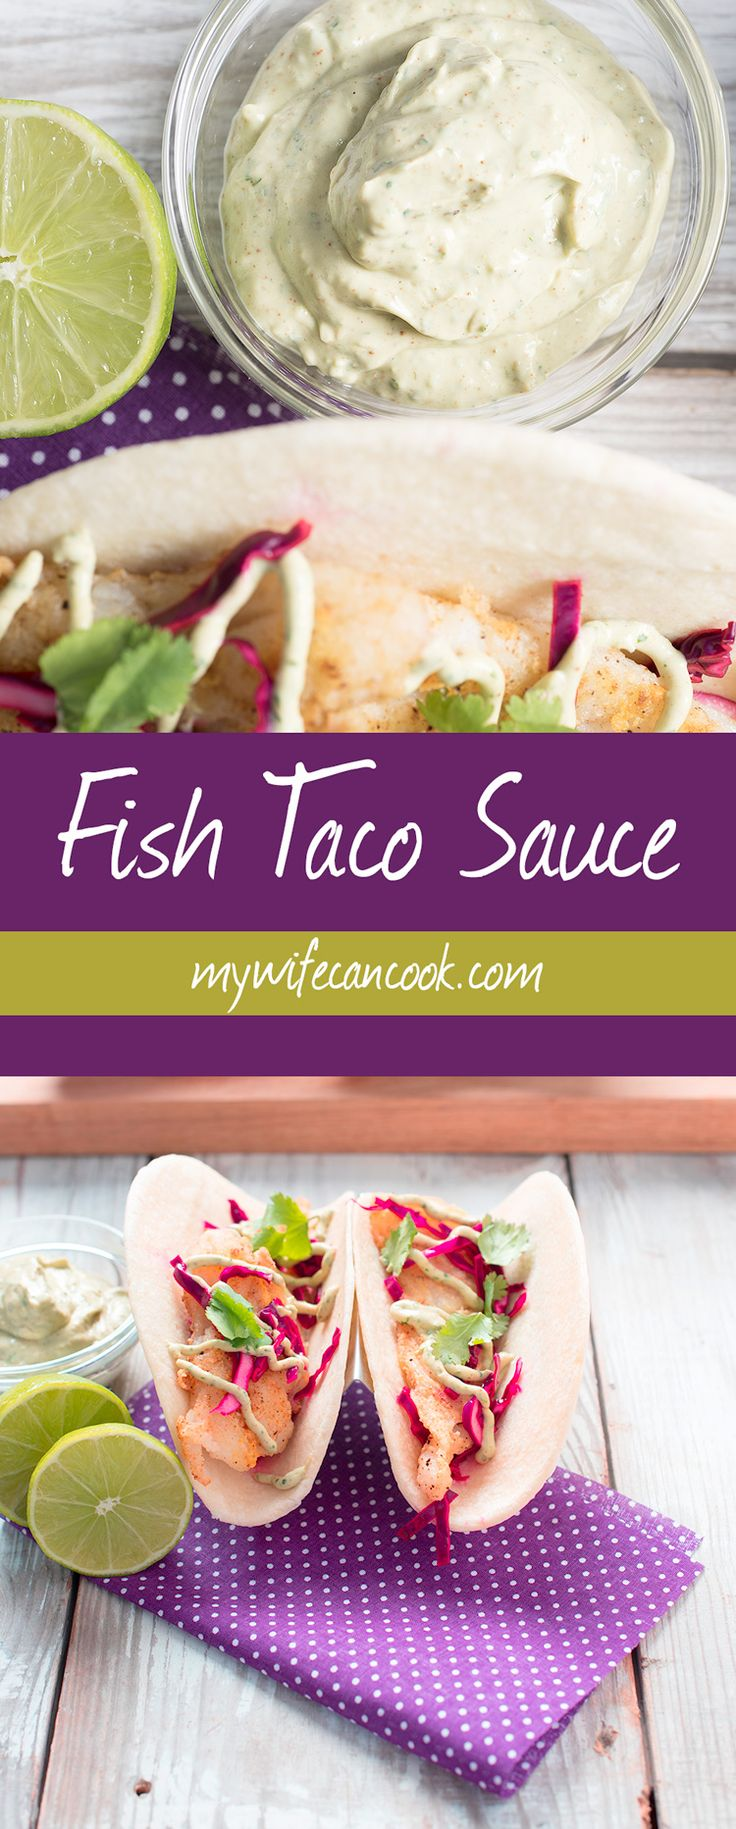 We are in love with this fish taco sauce. If you have a fish taco obsession like we do then you know that a great fish taco sauce is an absolute must when making your own homemade fish tacos. This fish taco sauce is a blend of sour cream and avocado with cilantro, lime juice, chili powder, chipotle chili powder, and cumin. It's so good! Best of all it's super easy to make and goes great on more than just tacos. But it's an absolute must for fish taco lovers.